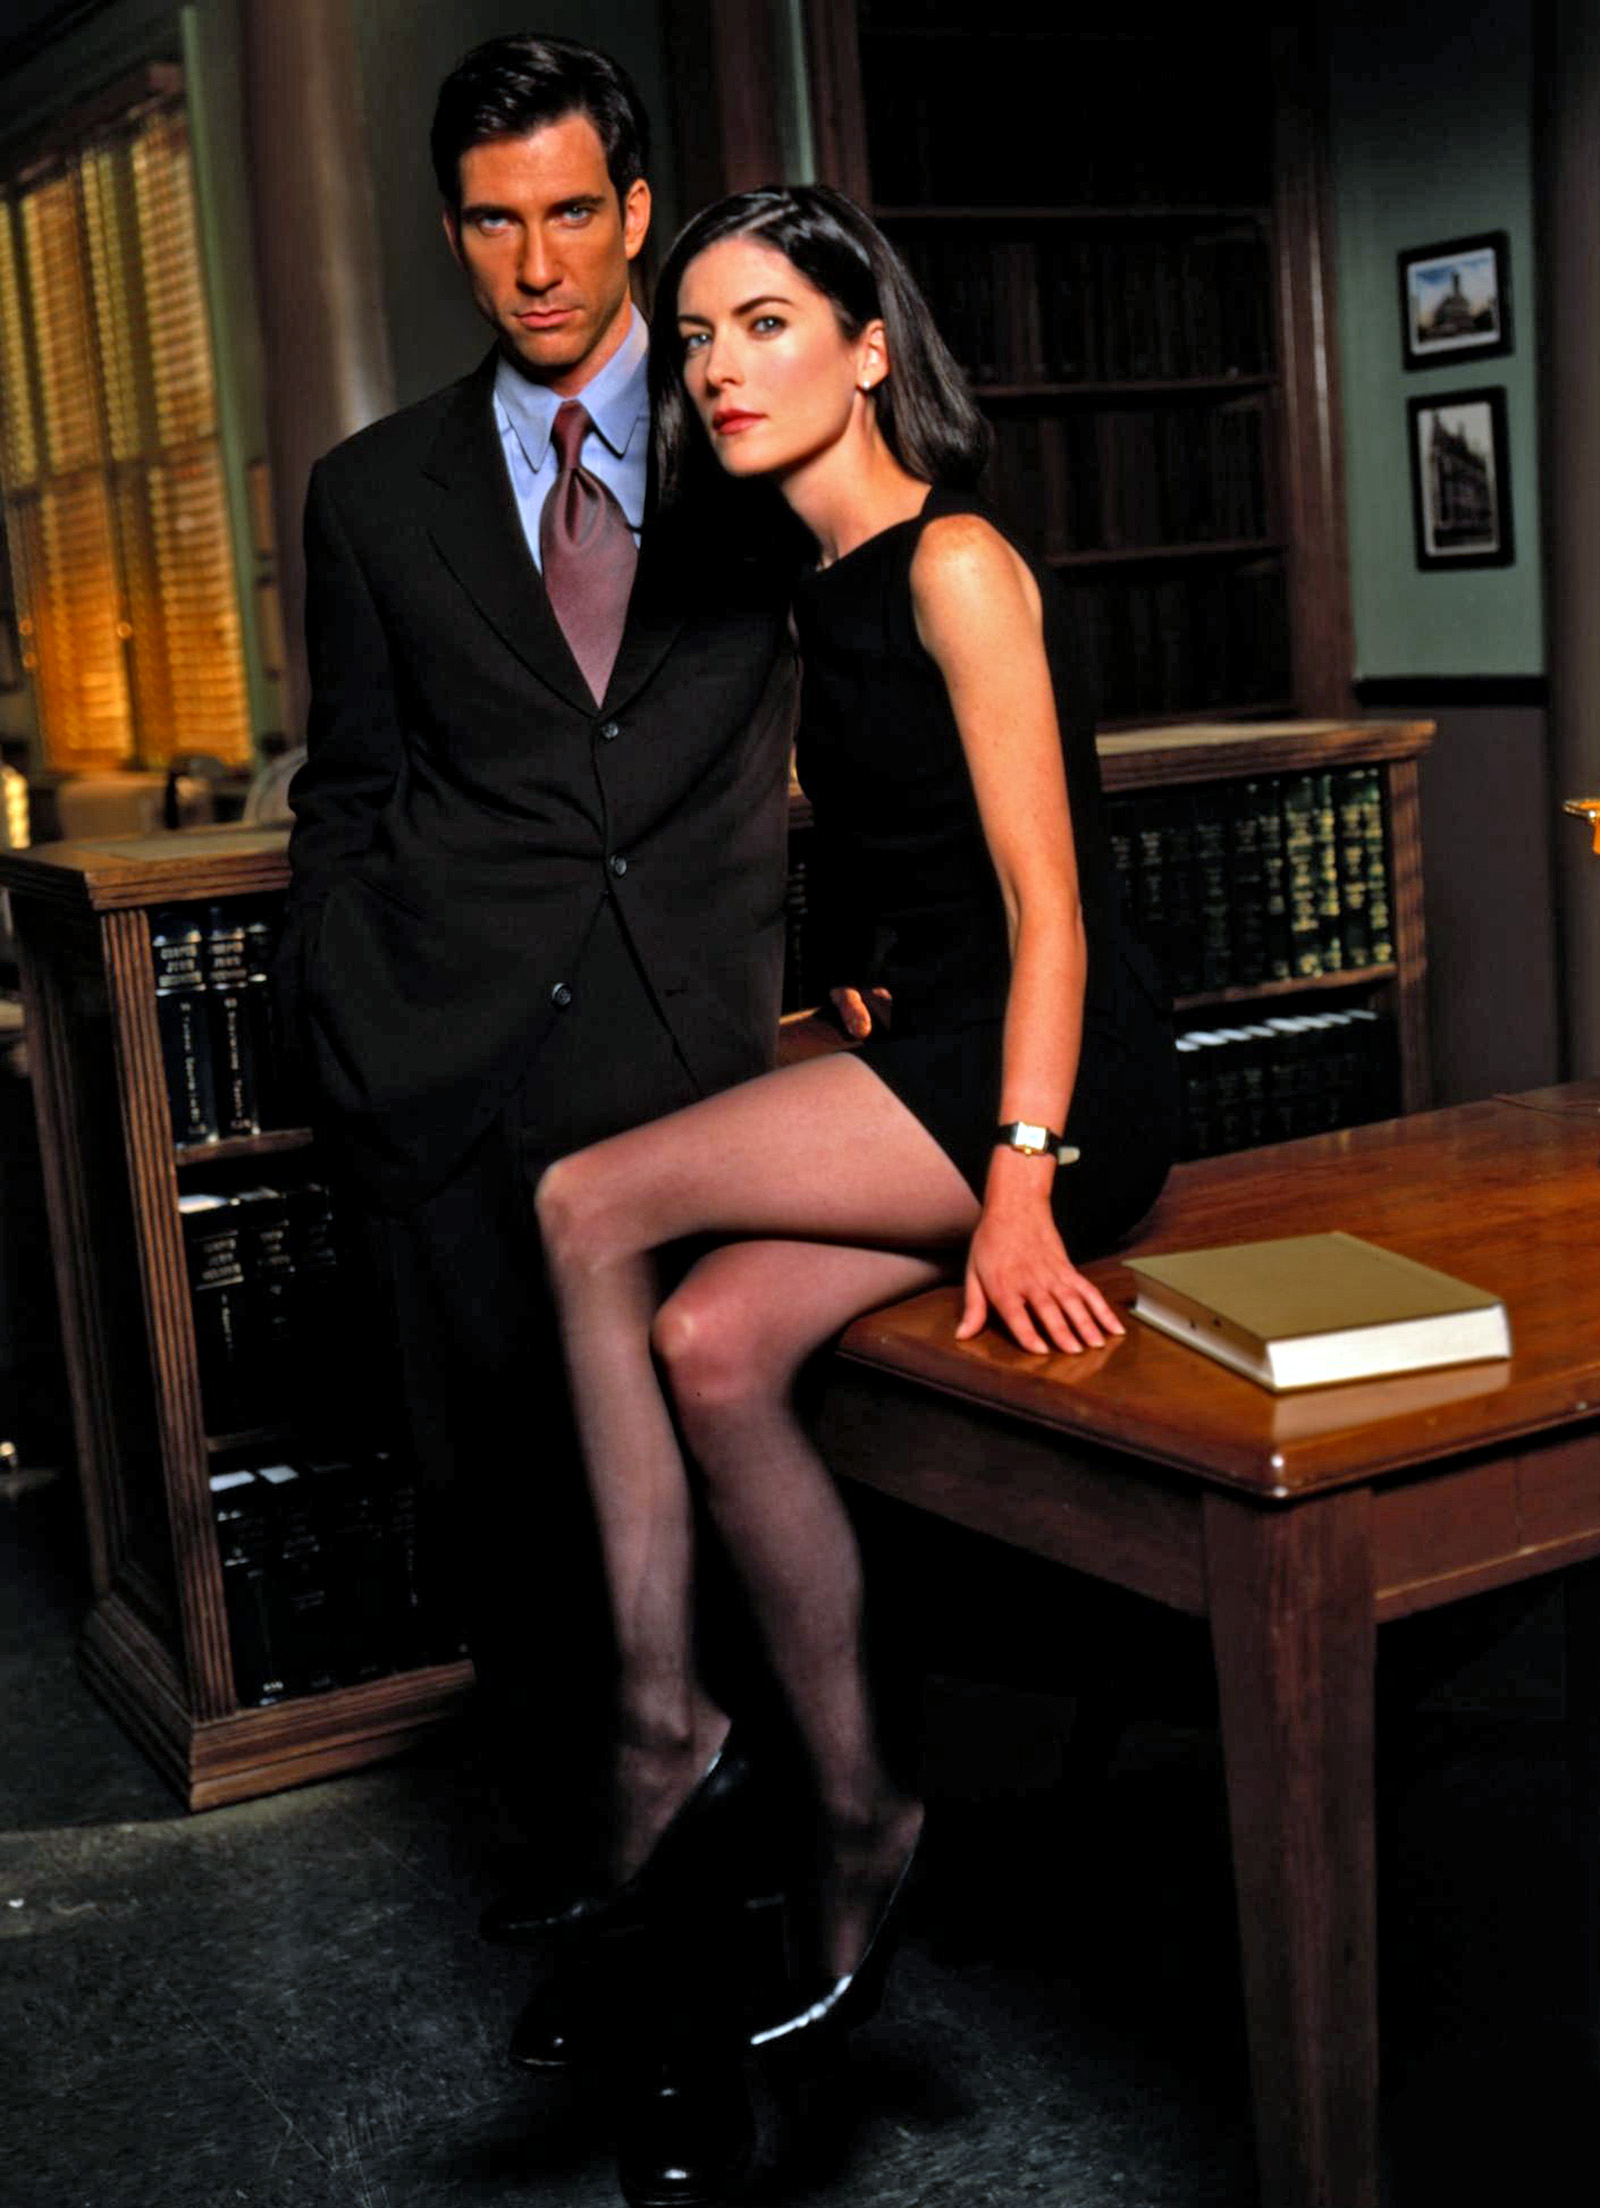 Cougar lawyer for black guys - 5 4